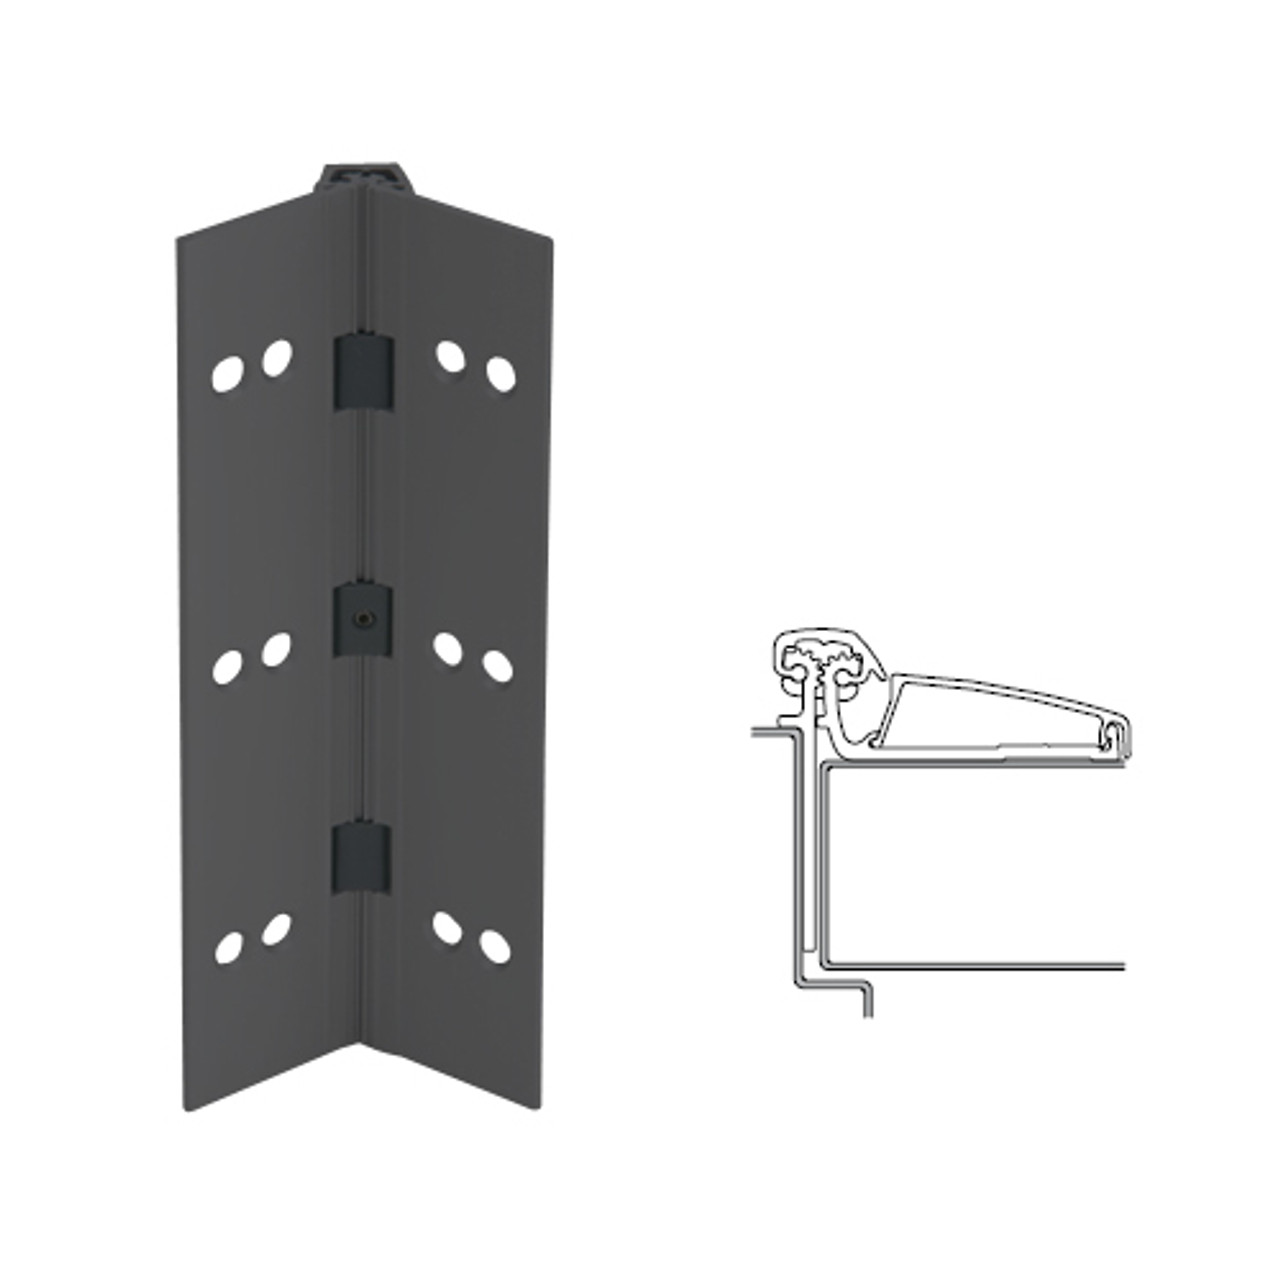 046XY-315AN-120-TFWD IVES Adjustable Half Surface Continuous Geared Hinges with Thread Forming Screws in Anodized Black